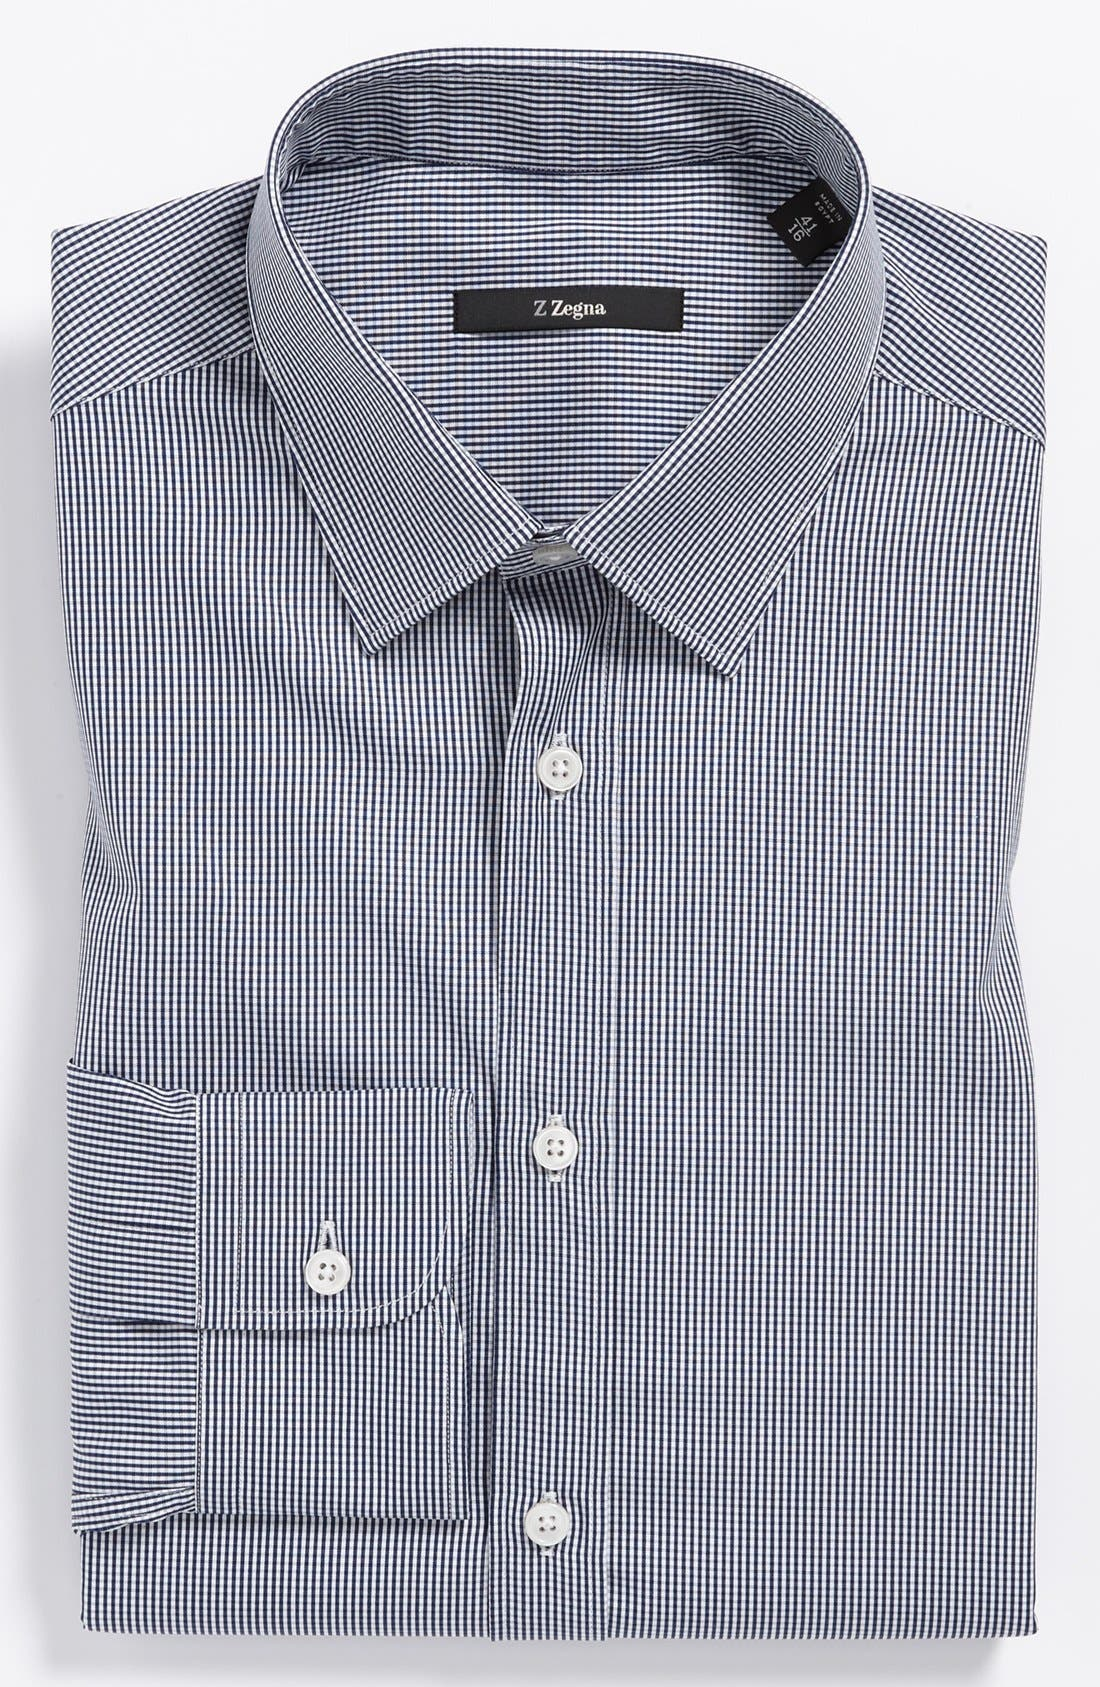 Alternate Image 1 Selected - Z Zegna Slim Fit Micro Check Dress Shirt